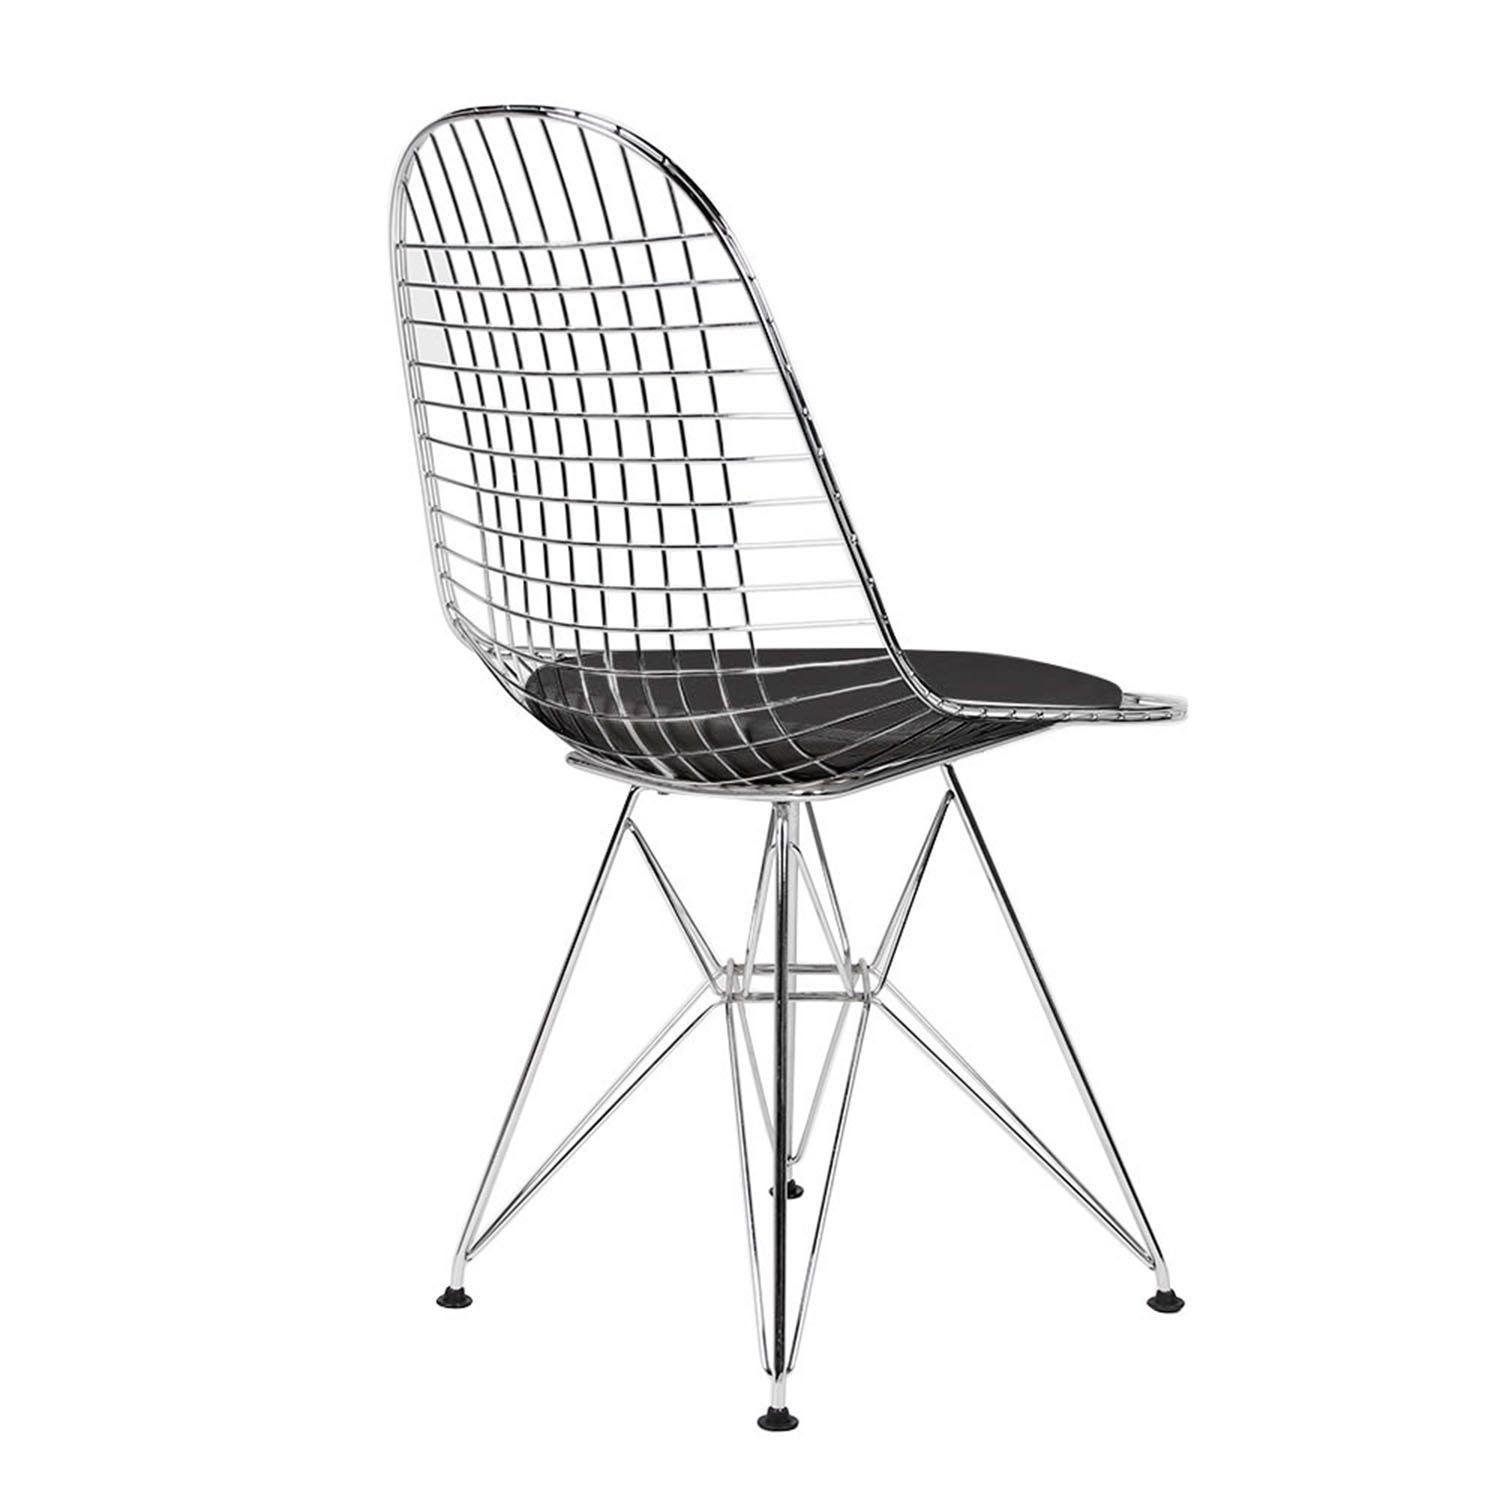 Replica Eames Wire Chair : REPLICA EAMES WIRE DINING CHAIR BLACK 3 from www.place-furniture.com.au size 1500 x 1500 jpeg 137kB